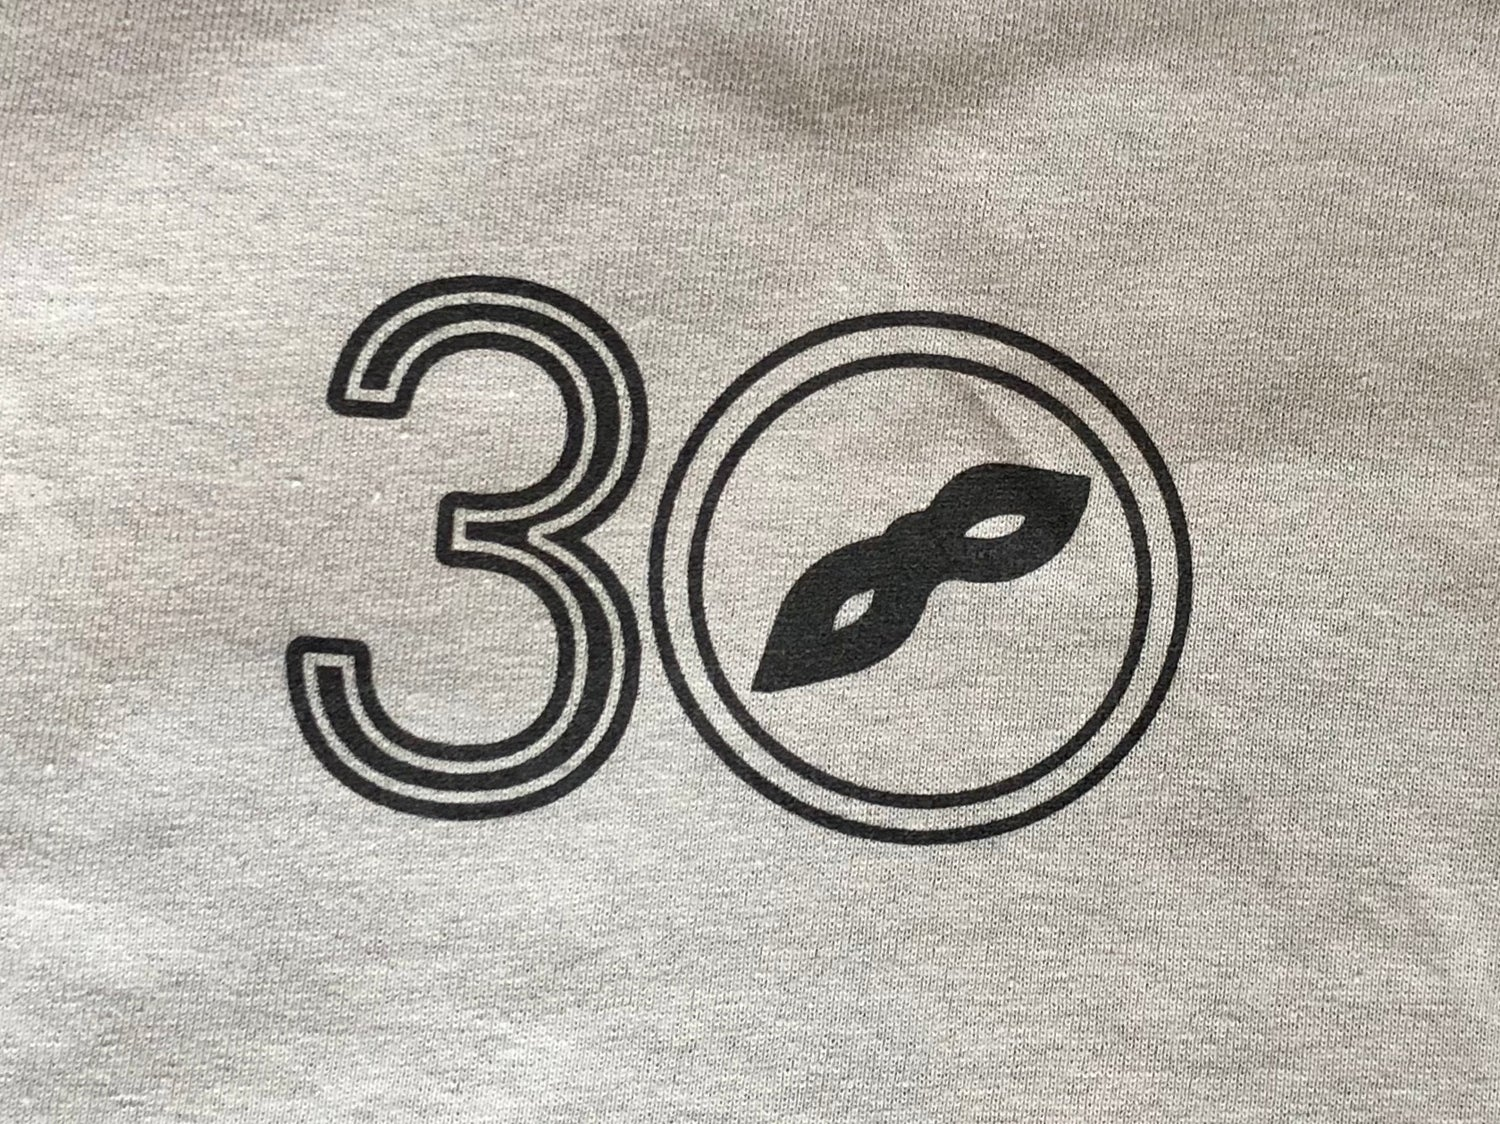 30 Years Grey Shirt